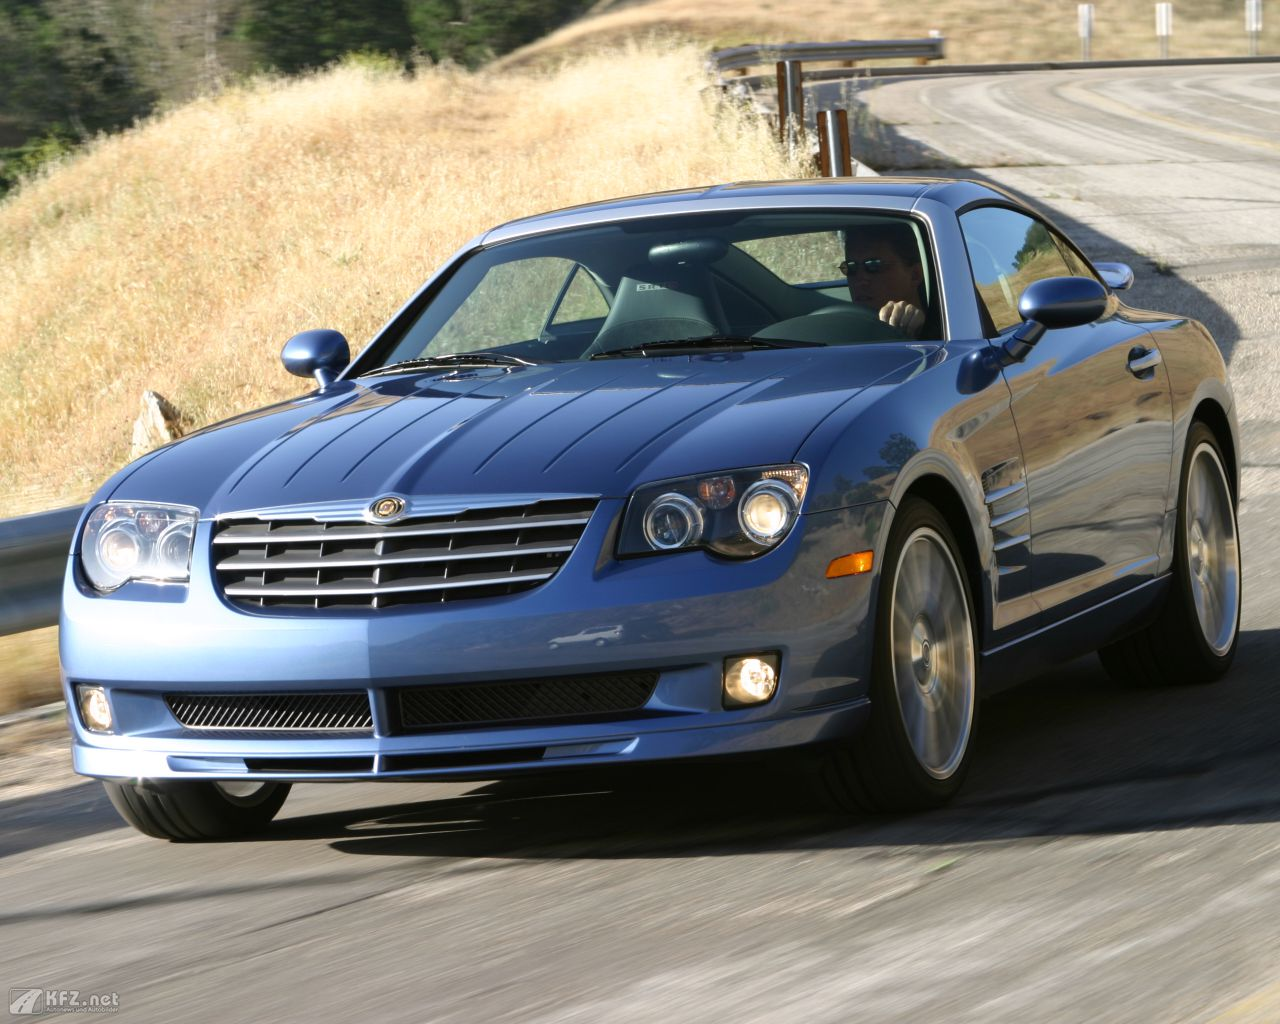 chrysler-crossfire-1280x1024-16